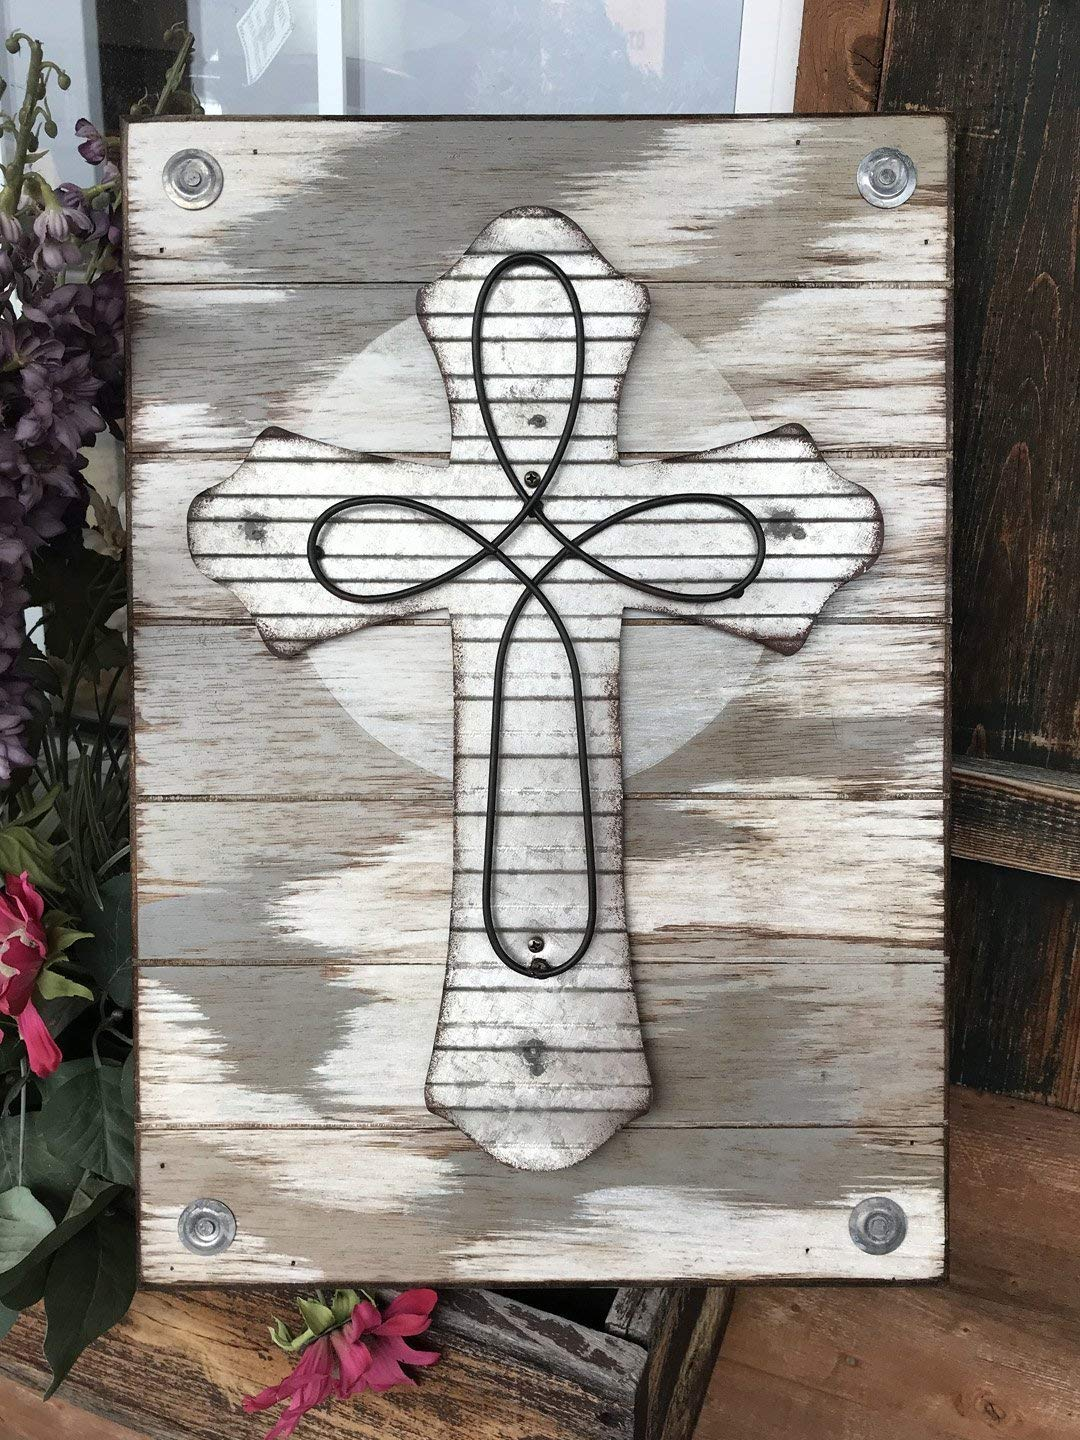 "CROSS Wall Art Hanging Decor *Reclaimed Industrial Sign *Distressed Rustic Wood with decorative Metal Galvanized Cross -20X14 Vertical *Cream, Gray, Silver, Black * 20""X14"" *Jesus Christ God Religious"